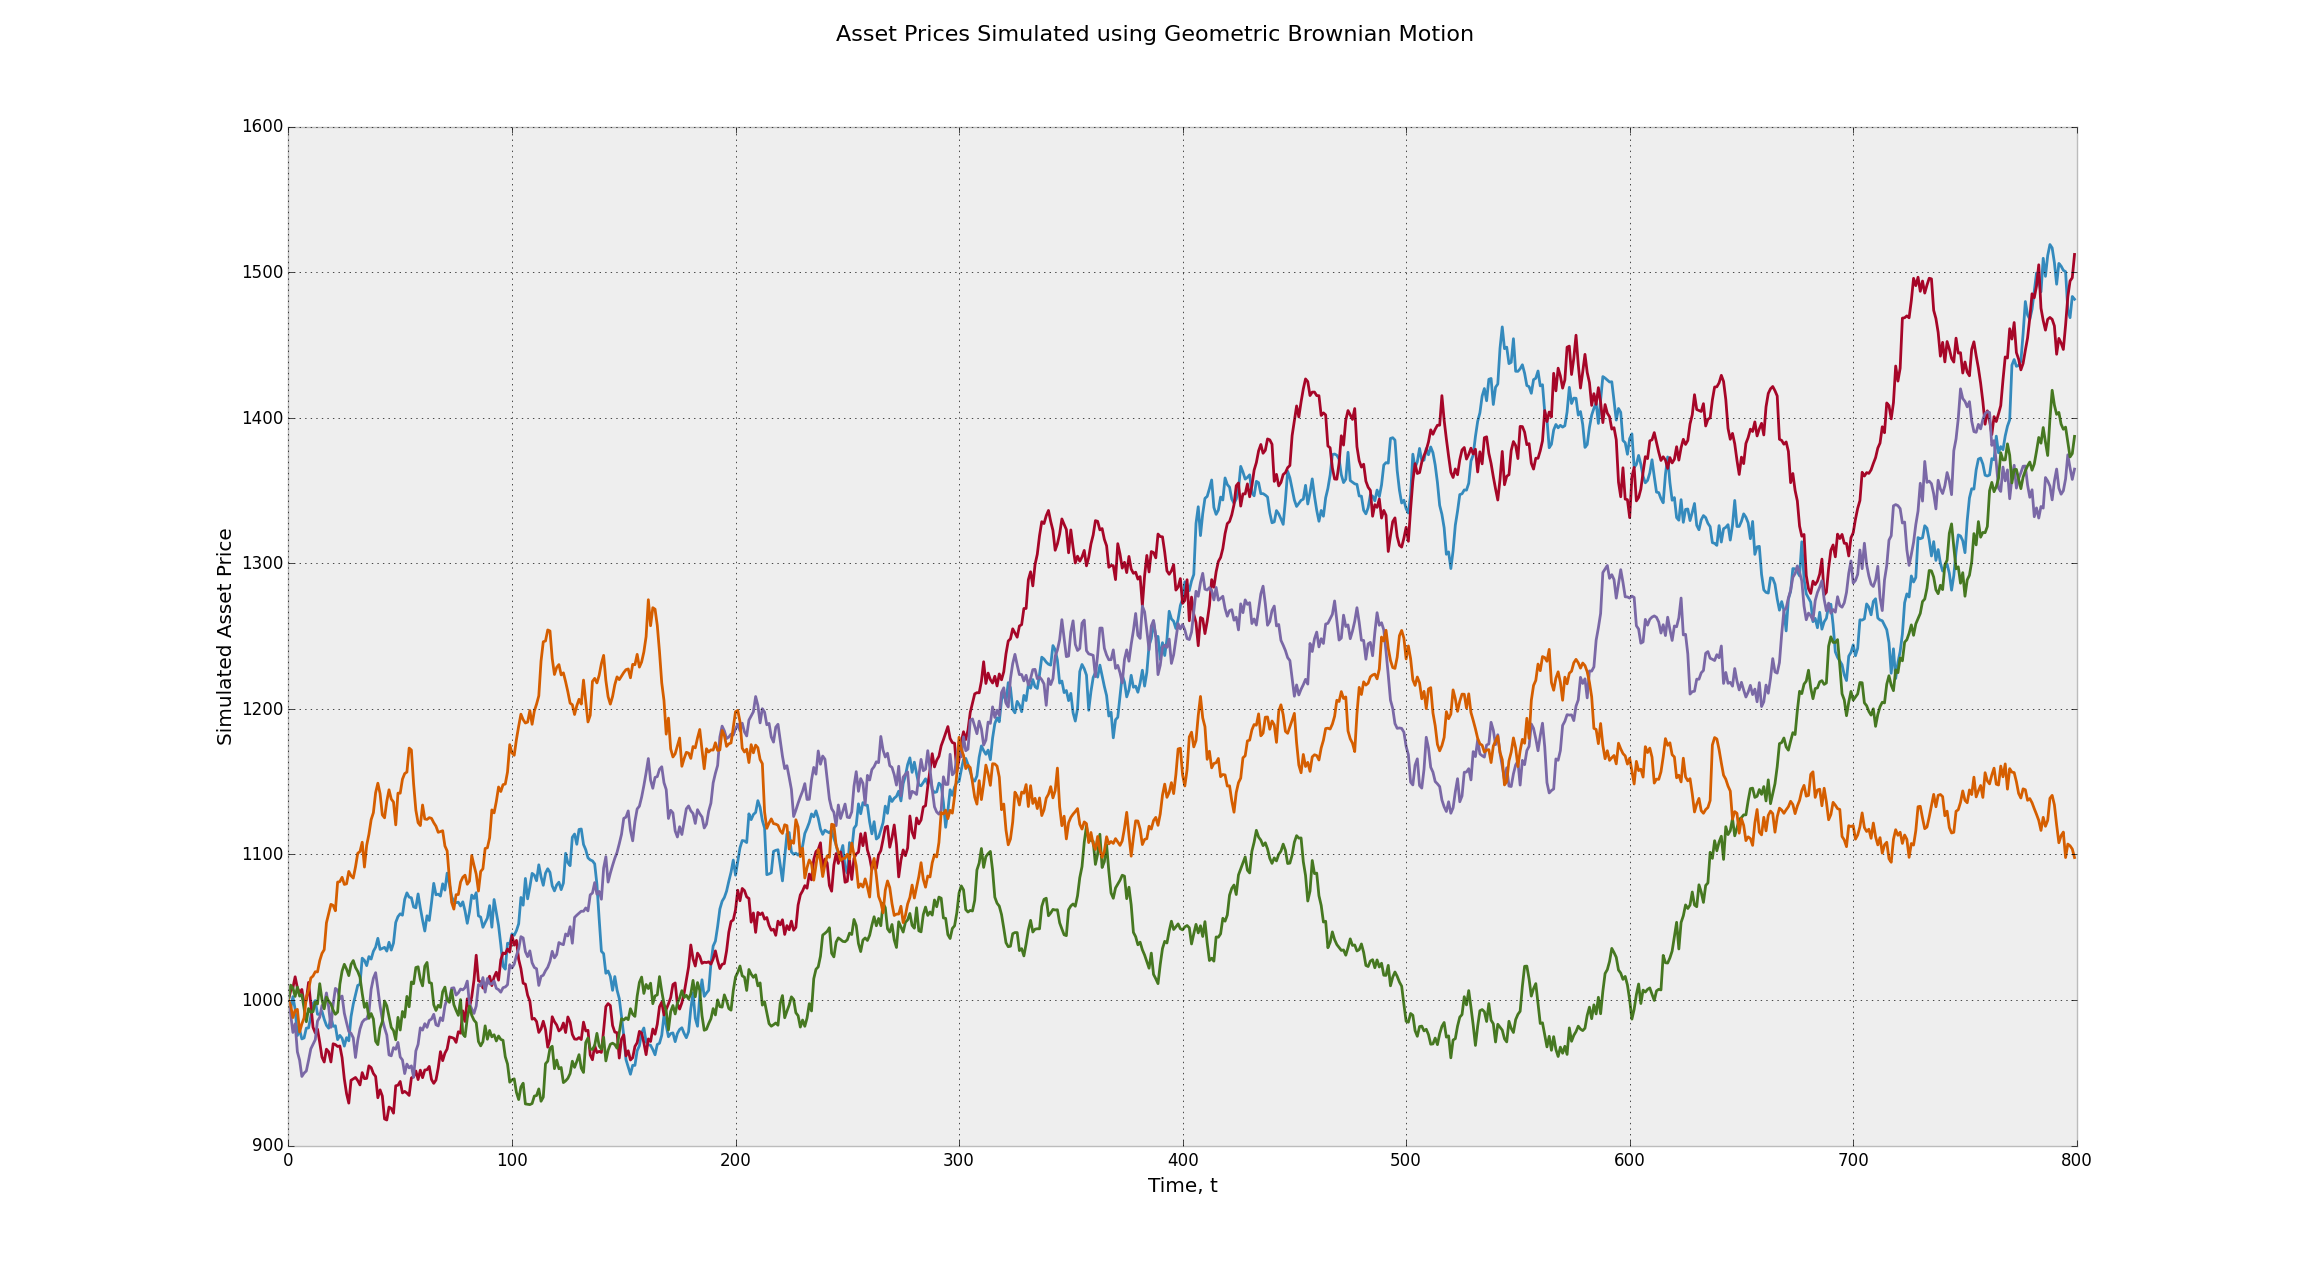 Asset Prices Simulated using the Geometric Brownian Motion Stochastic Process